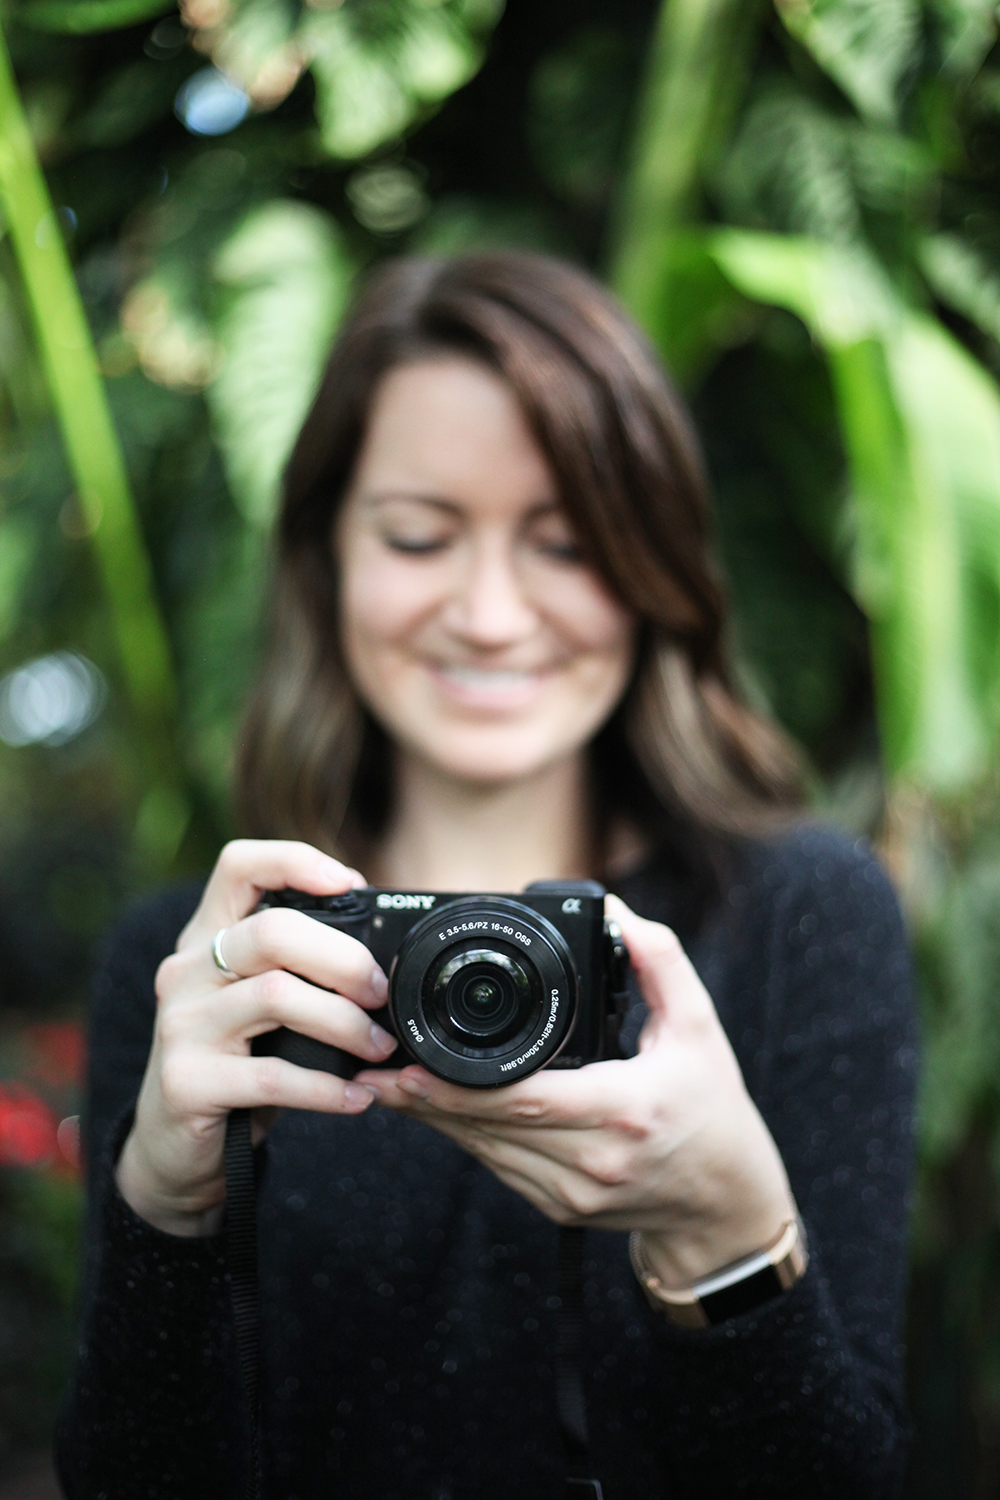 A blogger's honest review of the Sony a6000 mirrorless camera (spoiler alert: put it on your wishlist!)